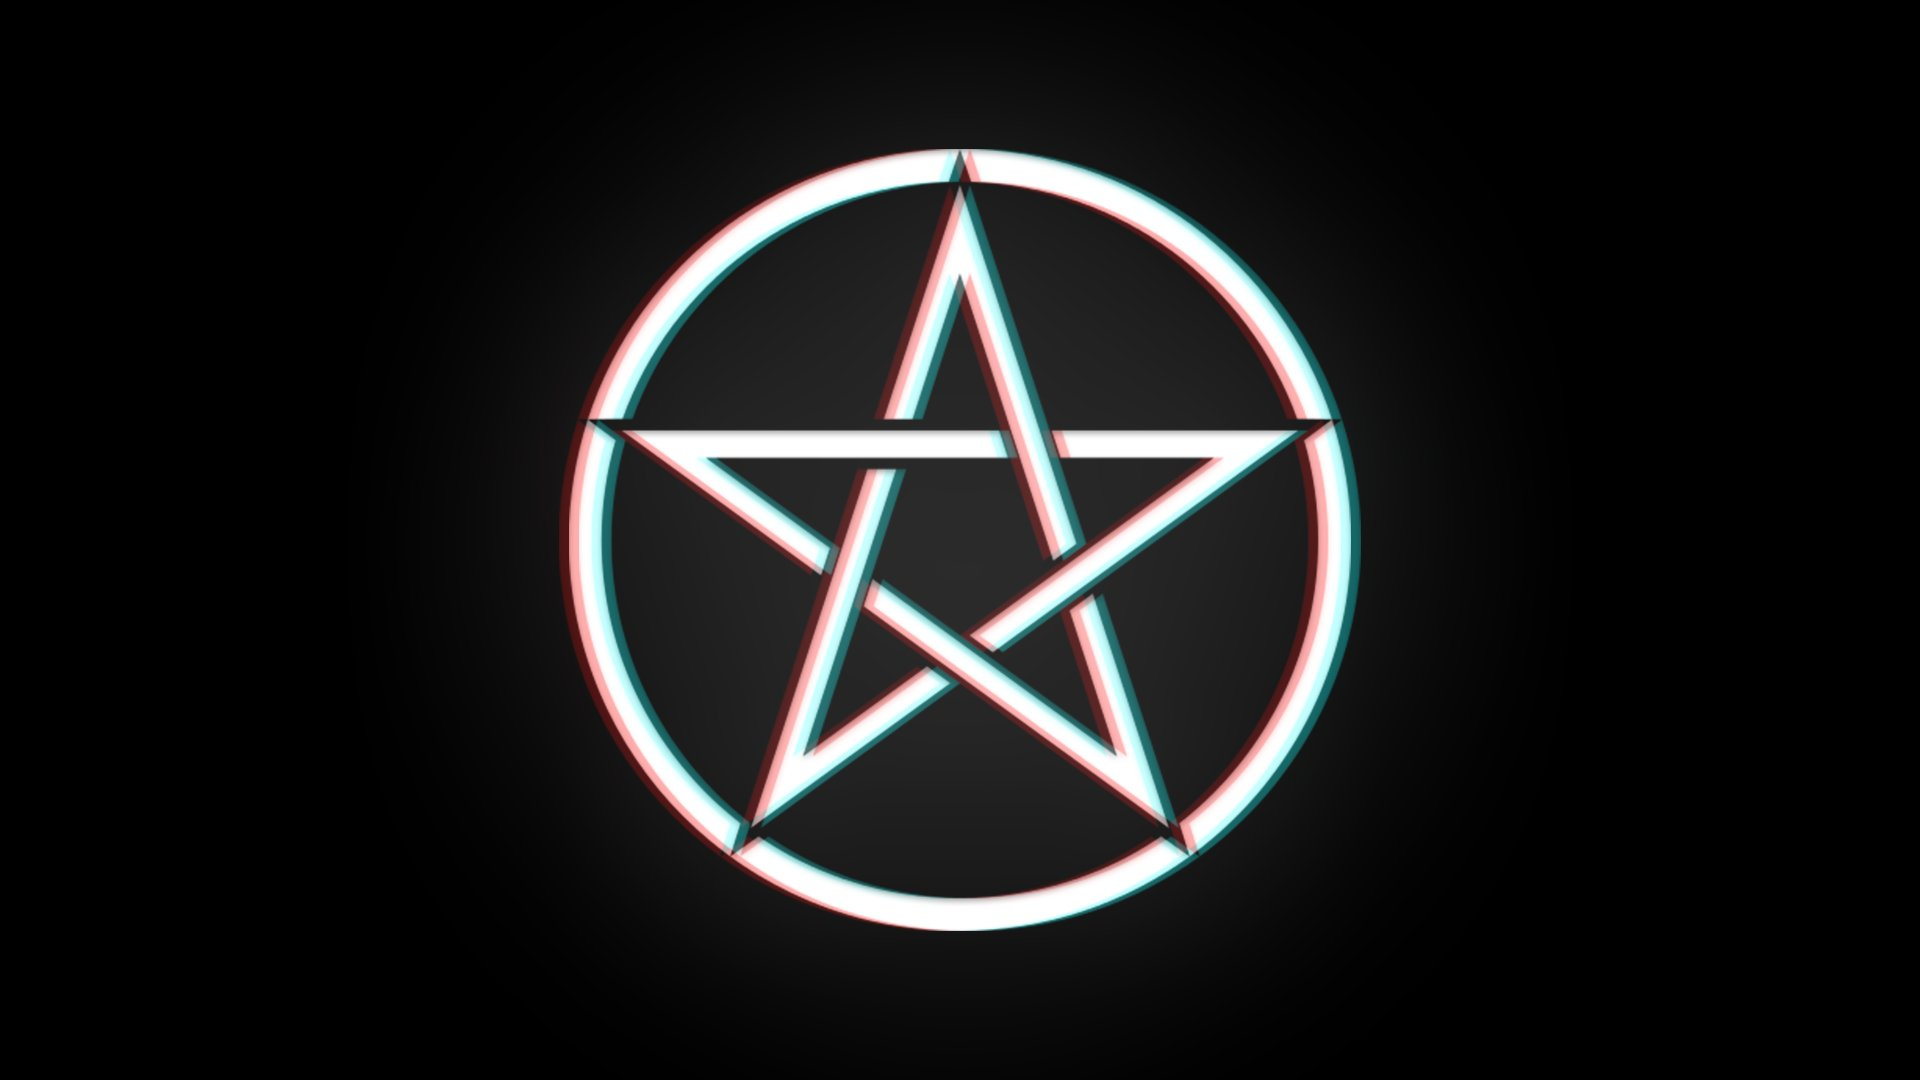 Pentagram Wallpaper 1920x1080 HD [3D Effect] by 1920x1080